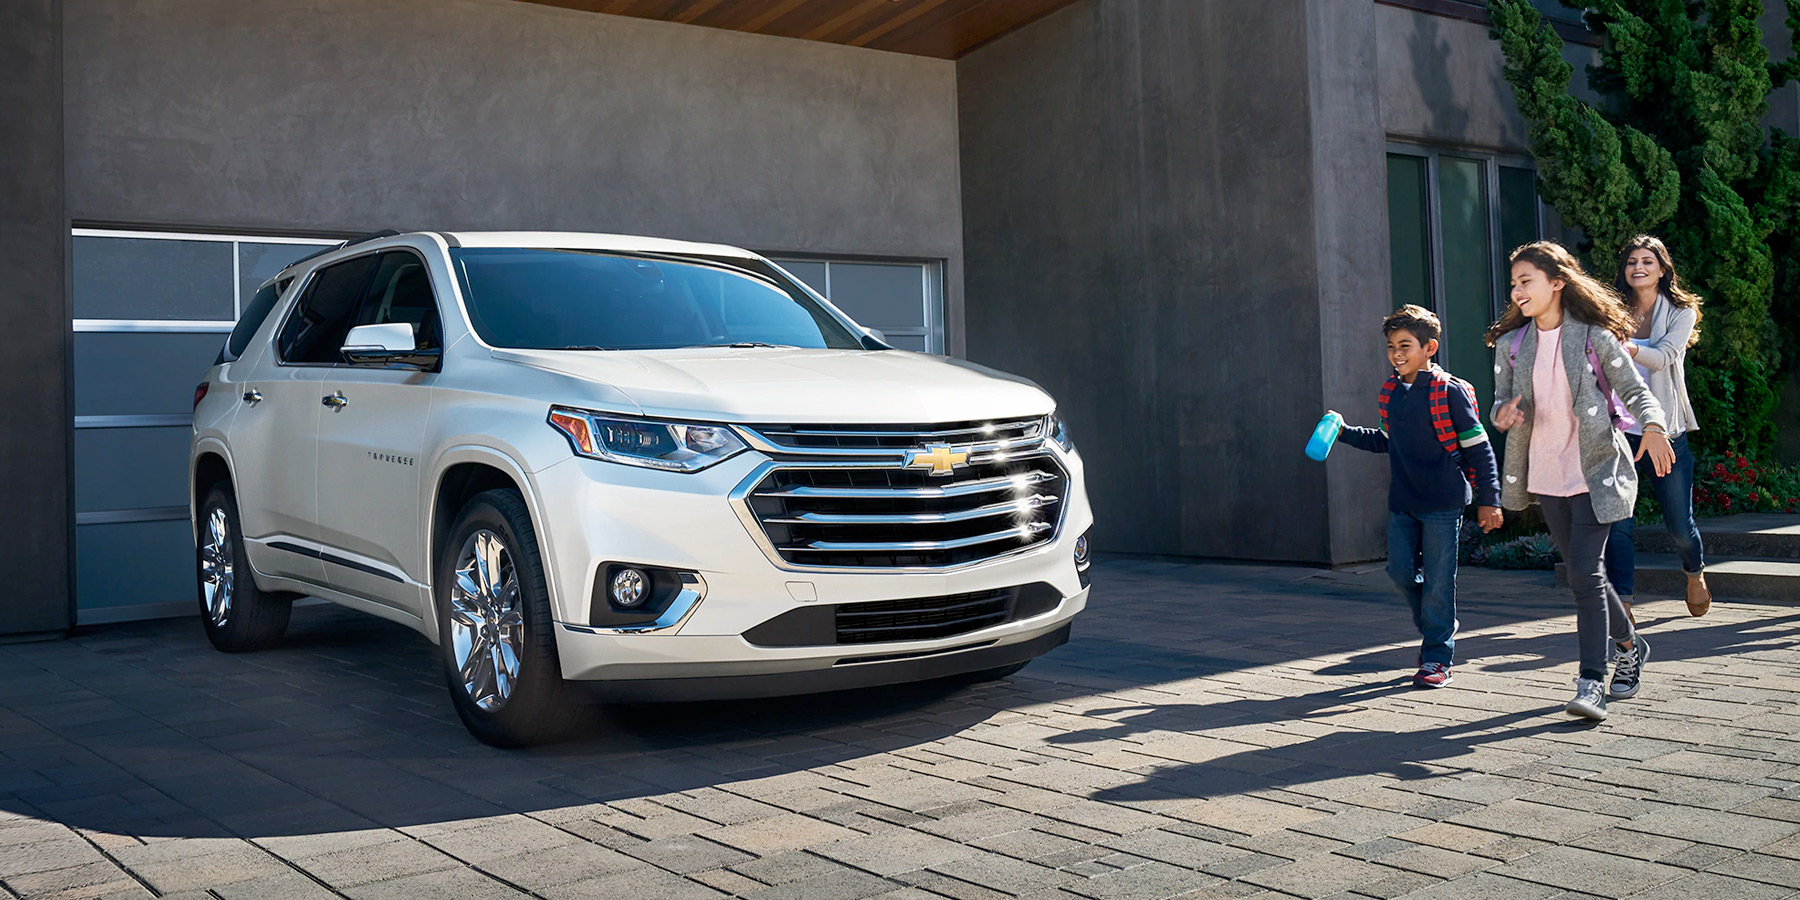 2020 Chevrolet Traverse - In Driveway with Family